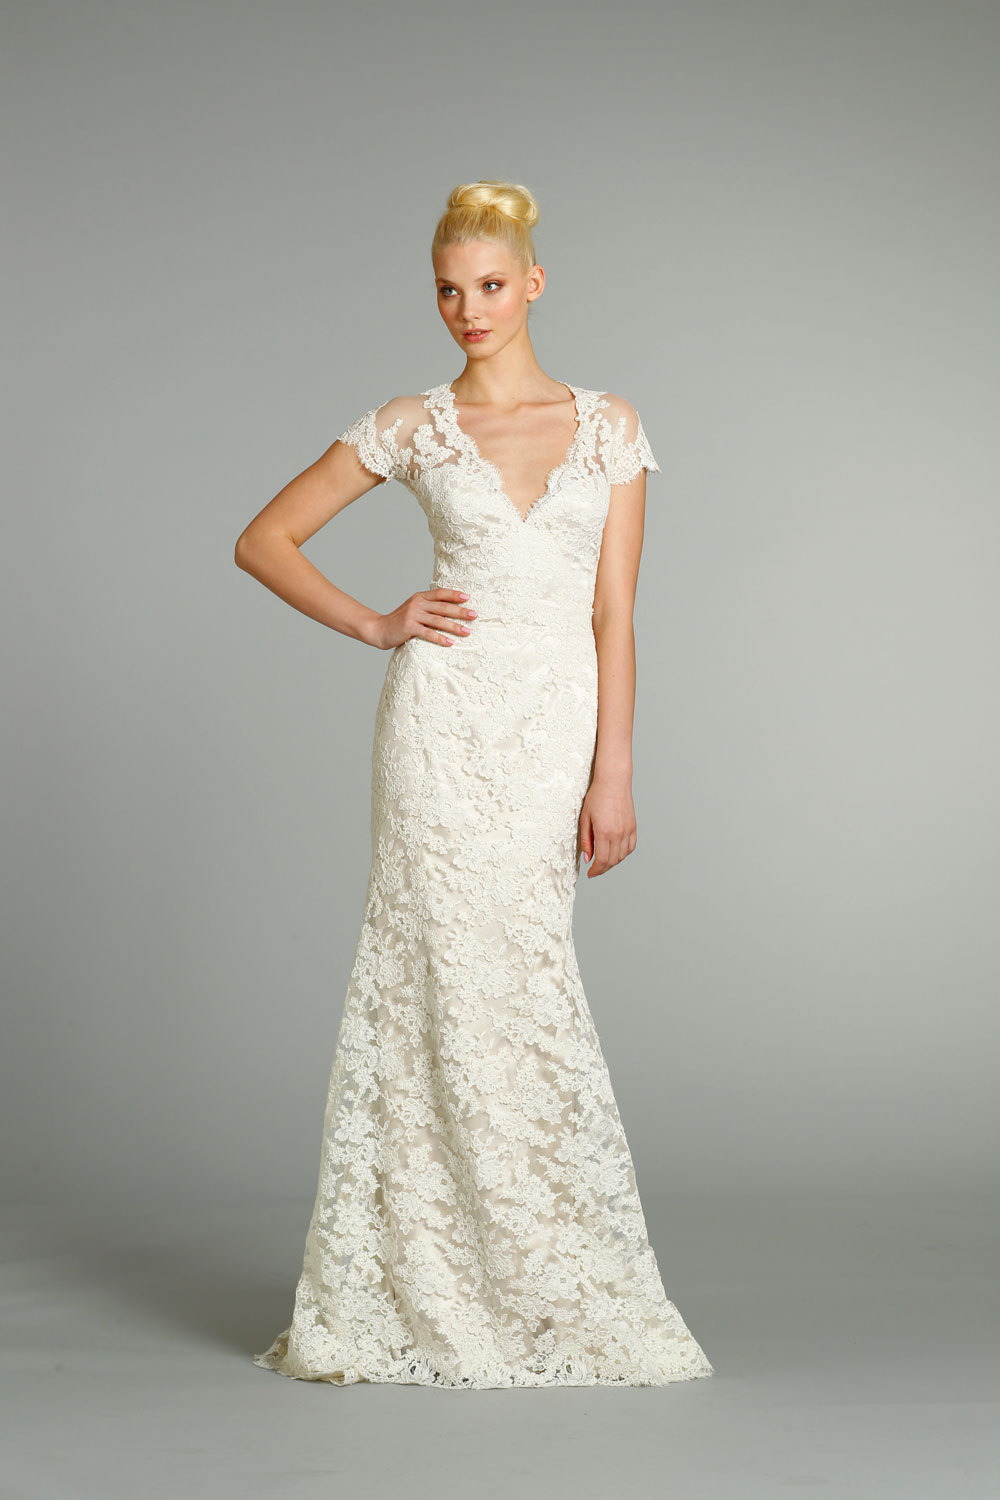 Fall-2012-wedding-dress-jim-hjelm-bridal-gowns-8252.full